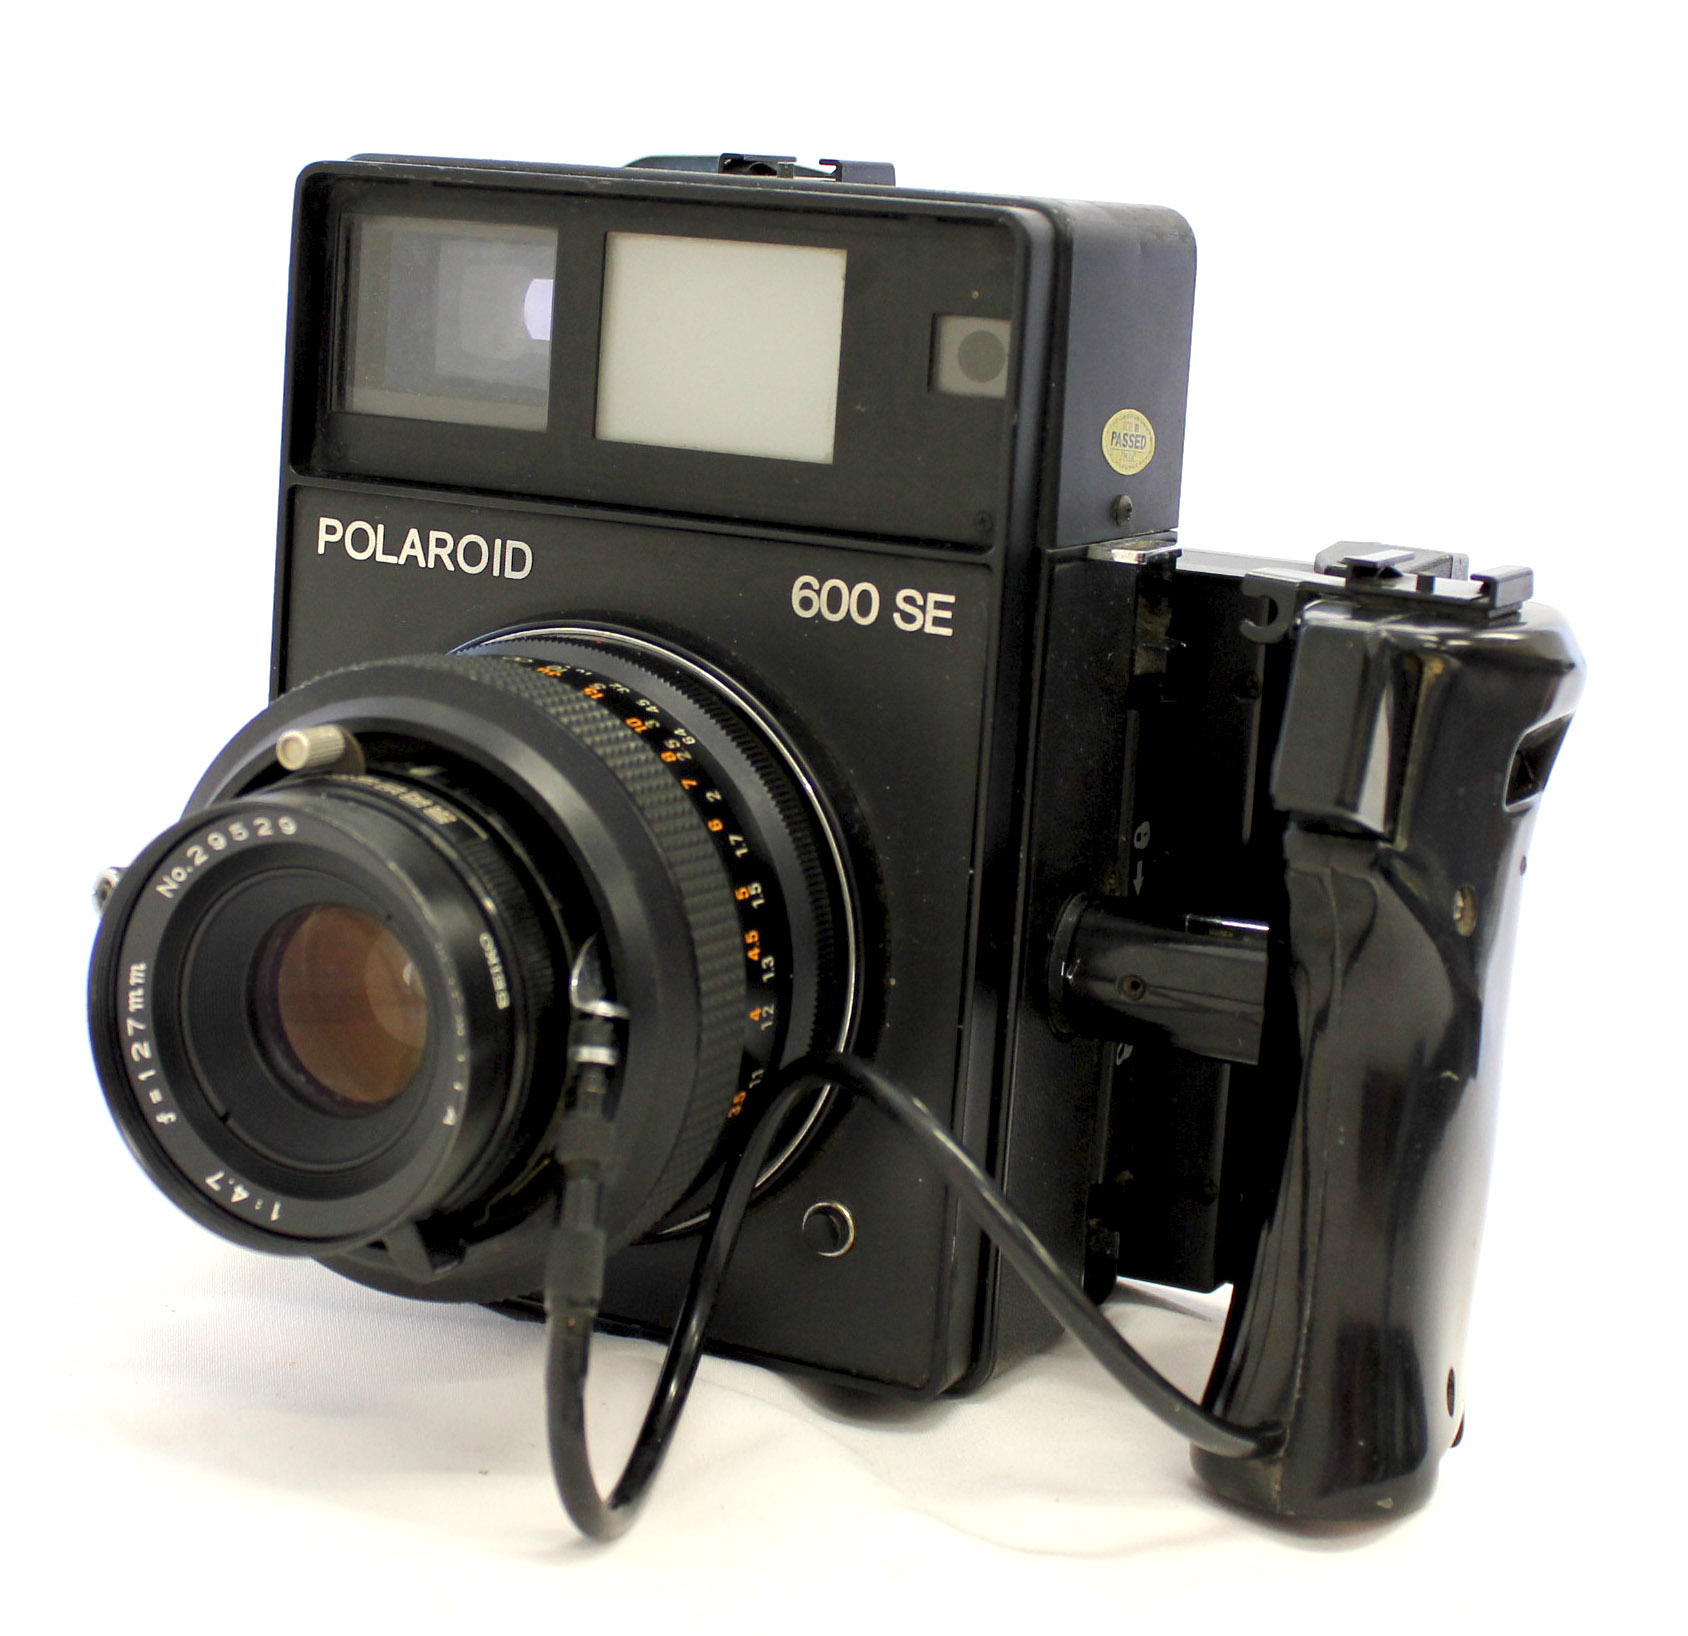 Japan Used Camera Shop | [Exc+++] Polaroid 600 SE Instant Camera w/ Mamiya 127mm F/4.7 Lens and Polaroid Back from Japan